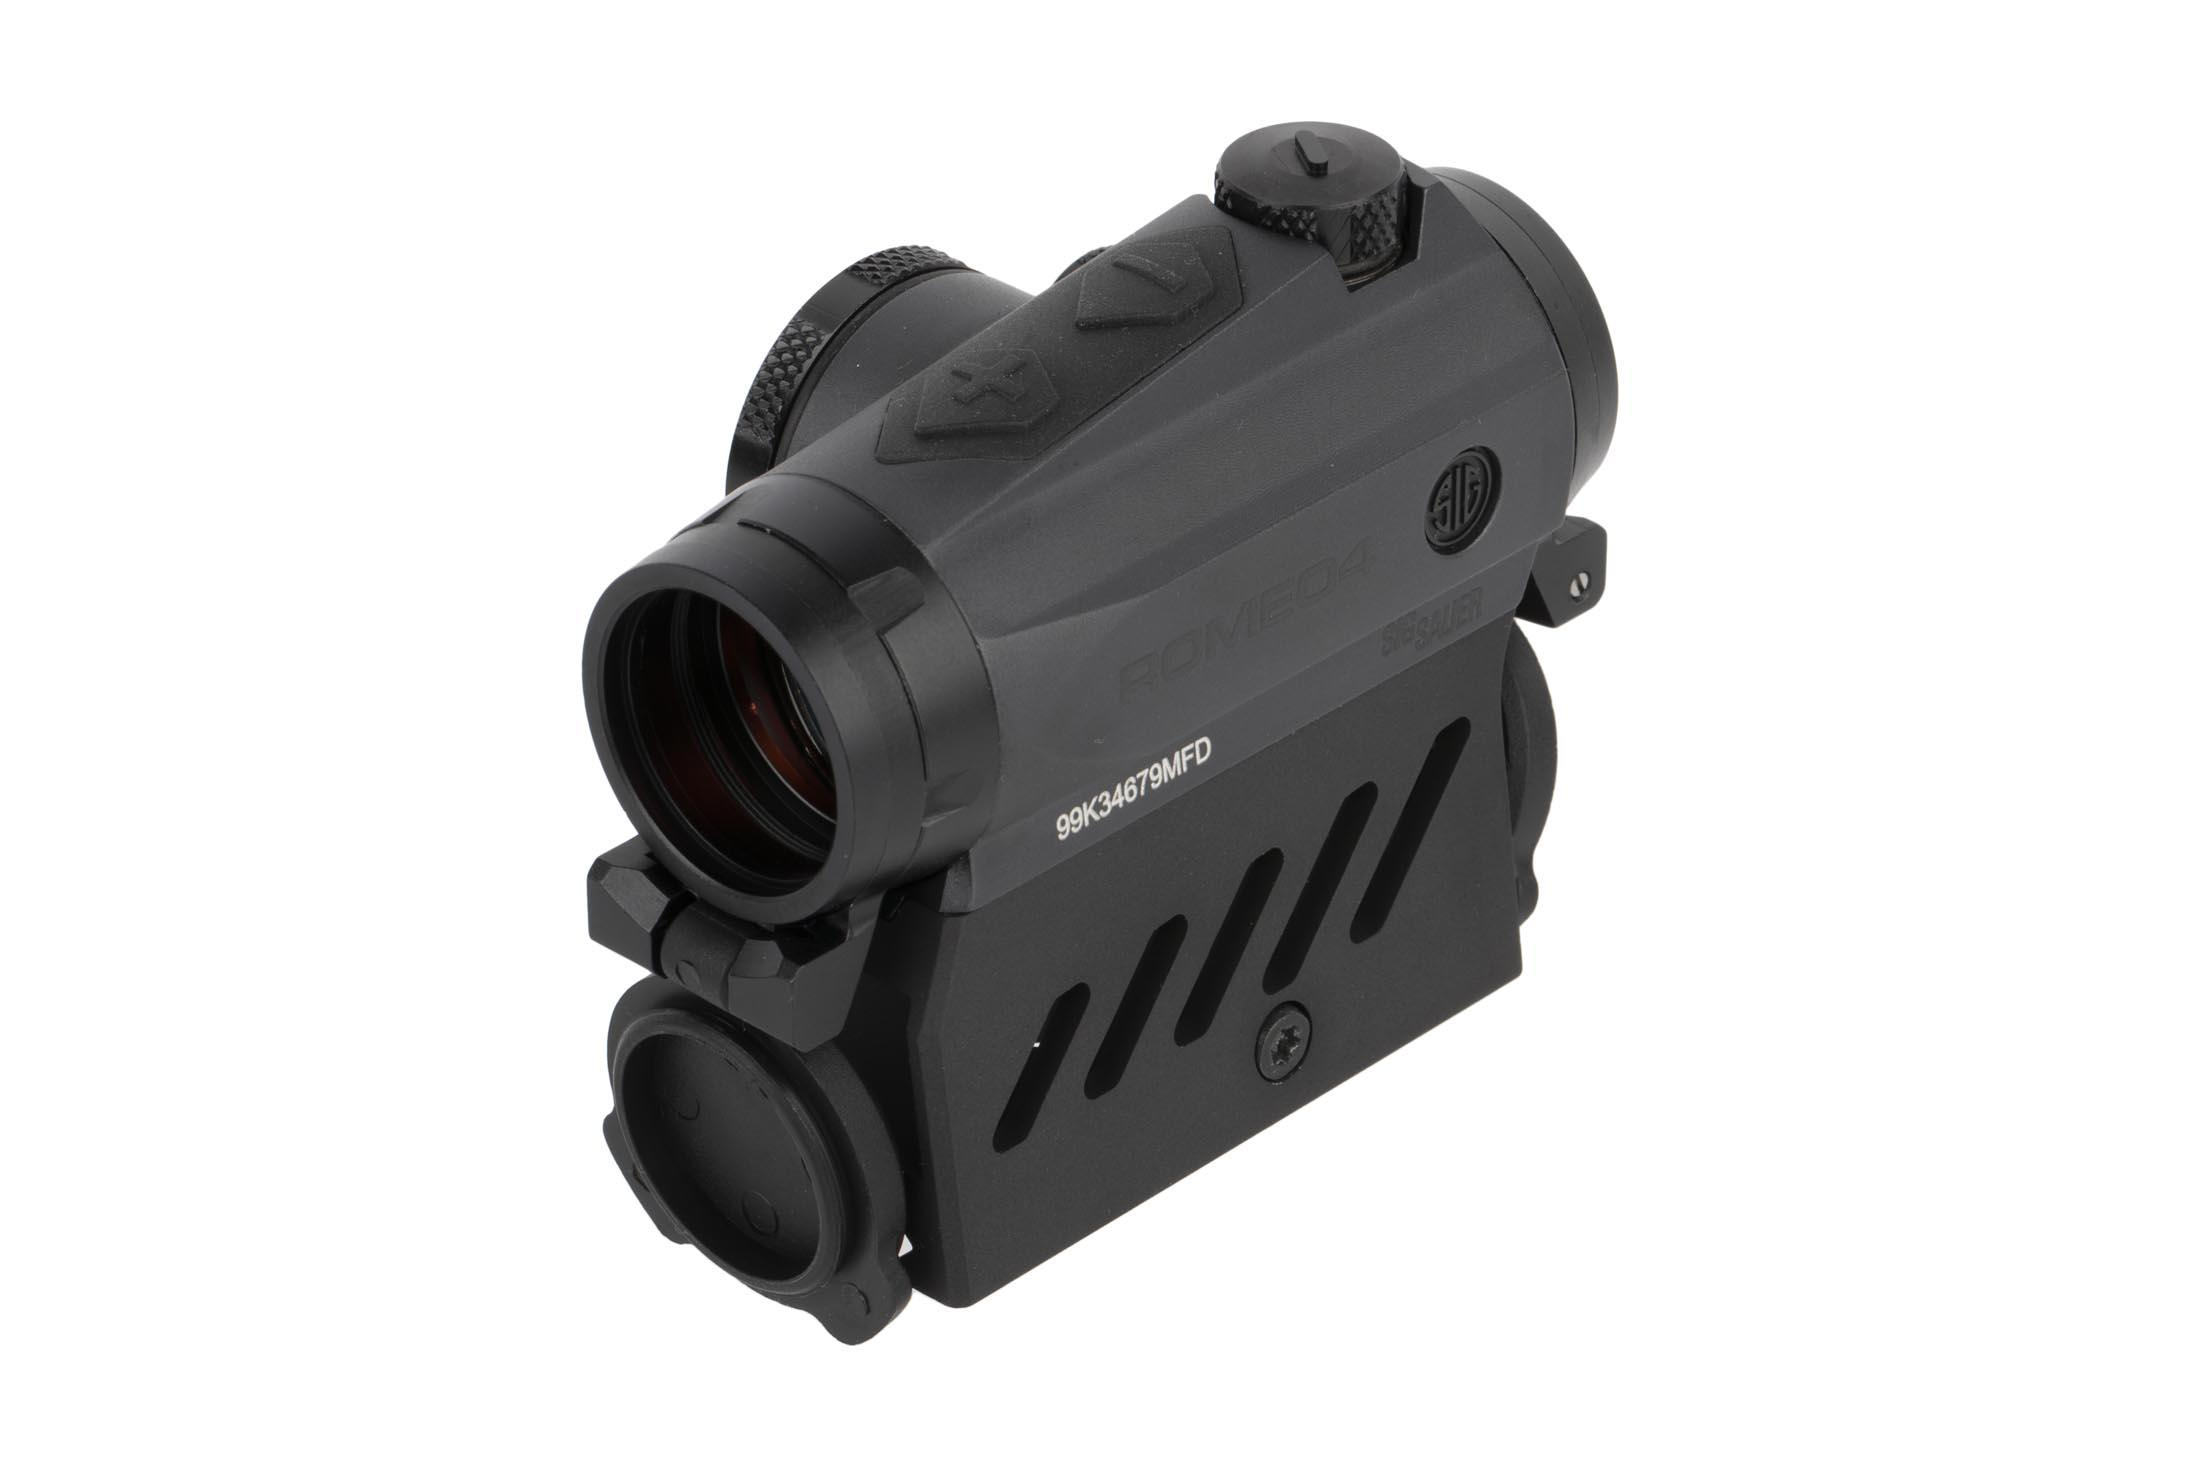 SIG Sauer lightweight Romeo 4M 2 MOA microdot features 12 brightness settings including 2 Nightvision Compatible settings